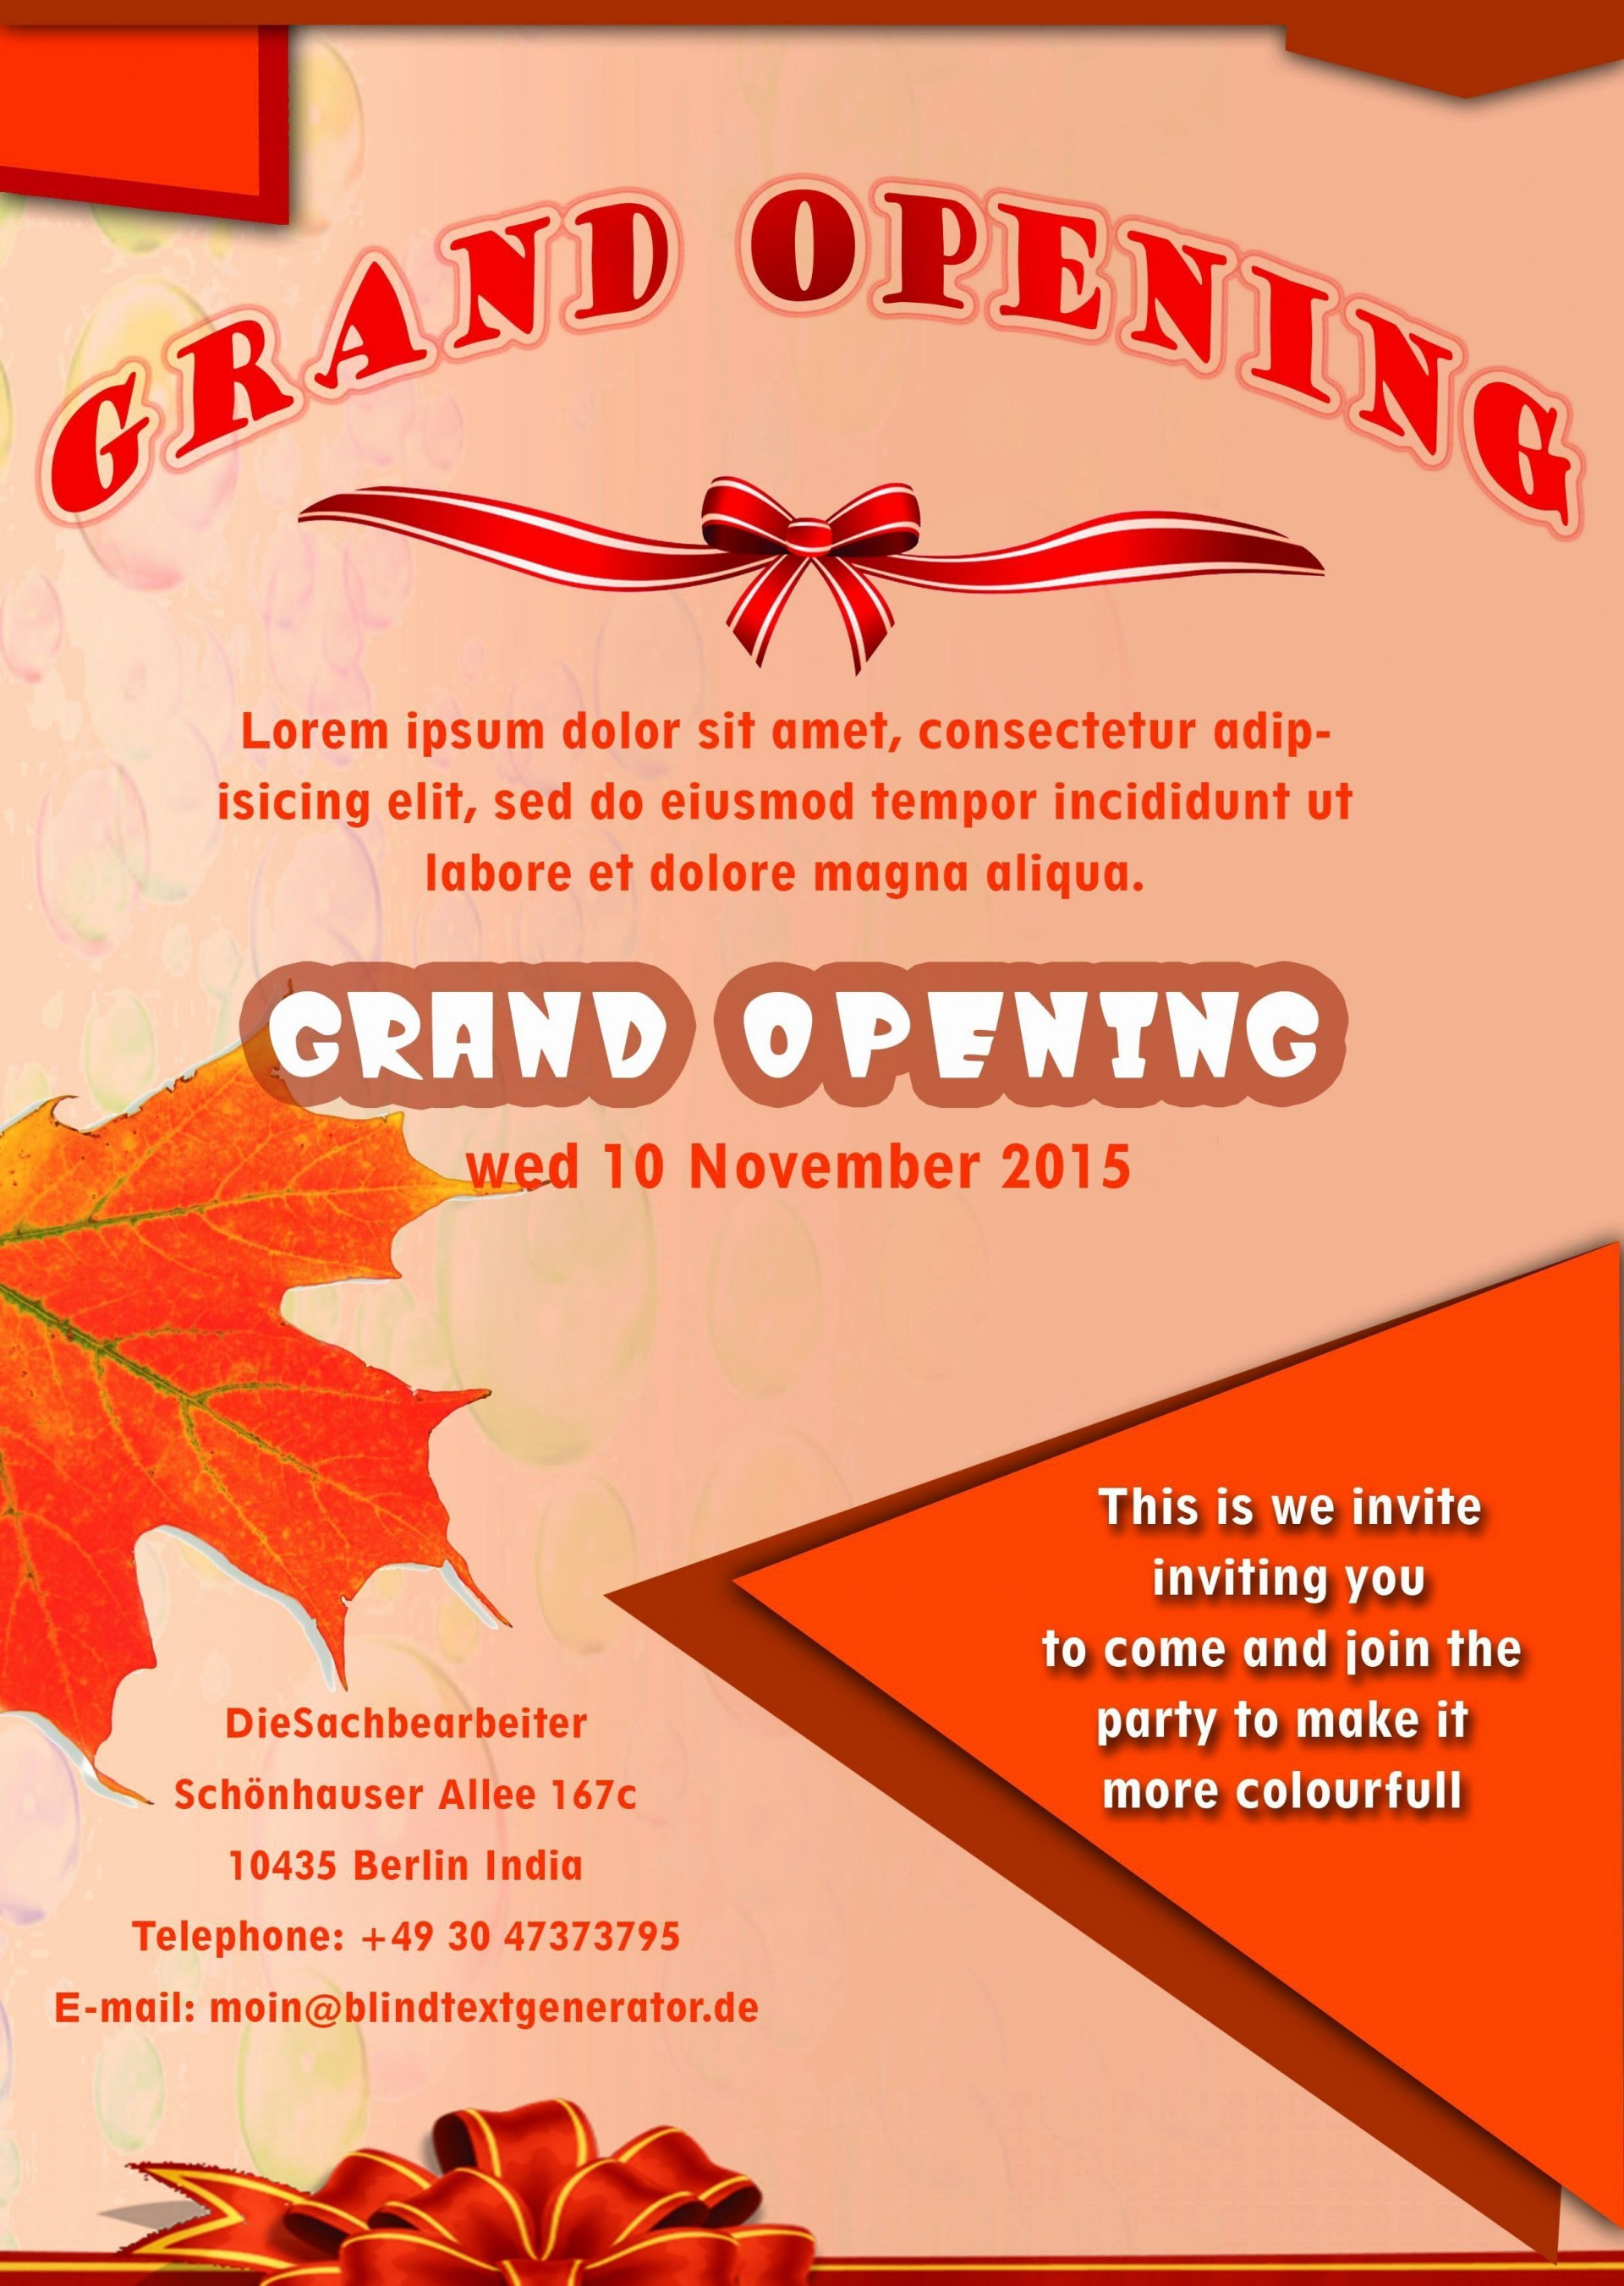 001 Shocking Grand Opening Flyer Template Example  Free Psd Busines1920